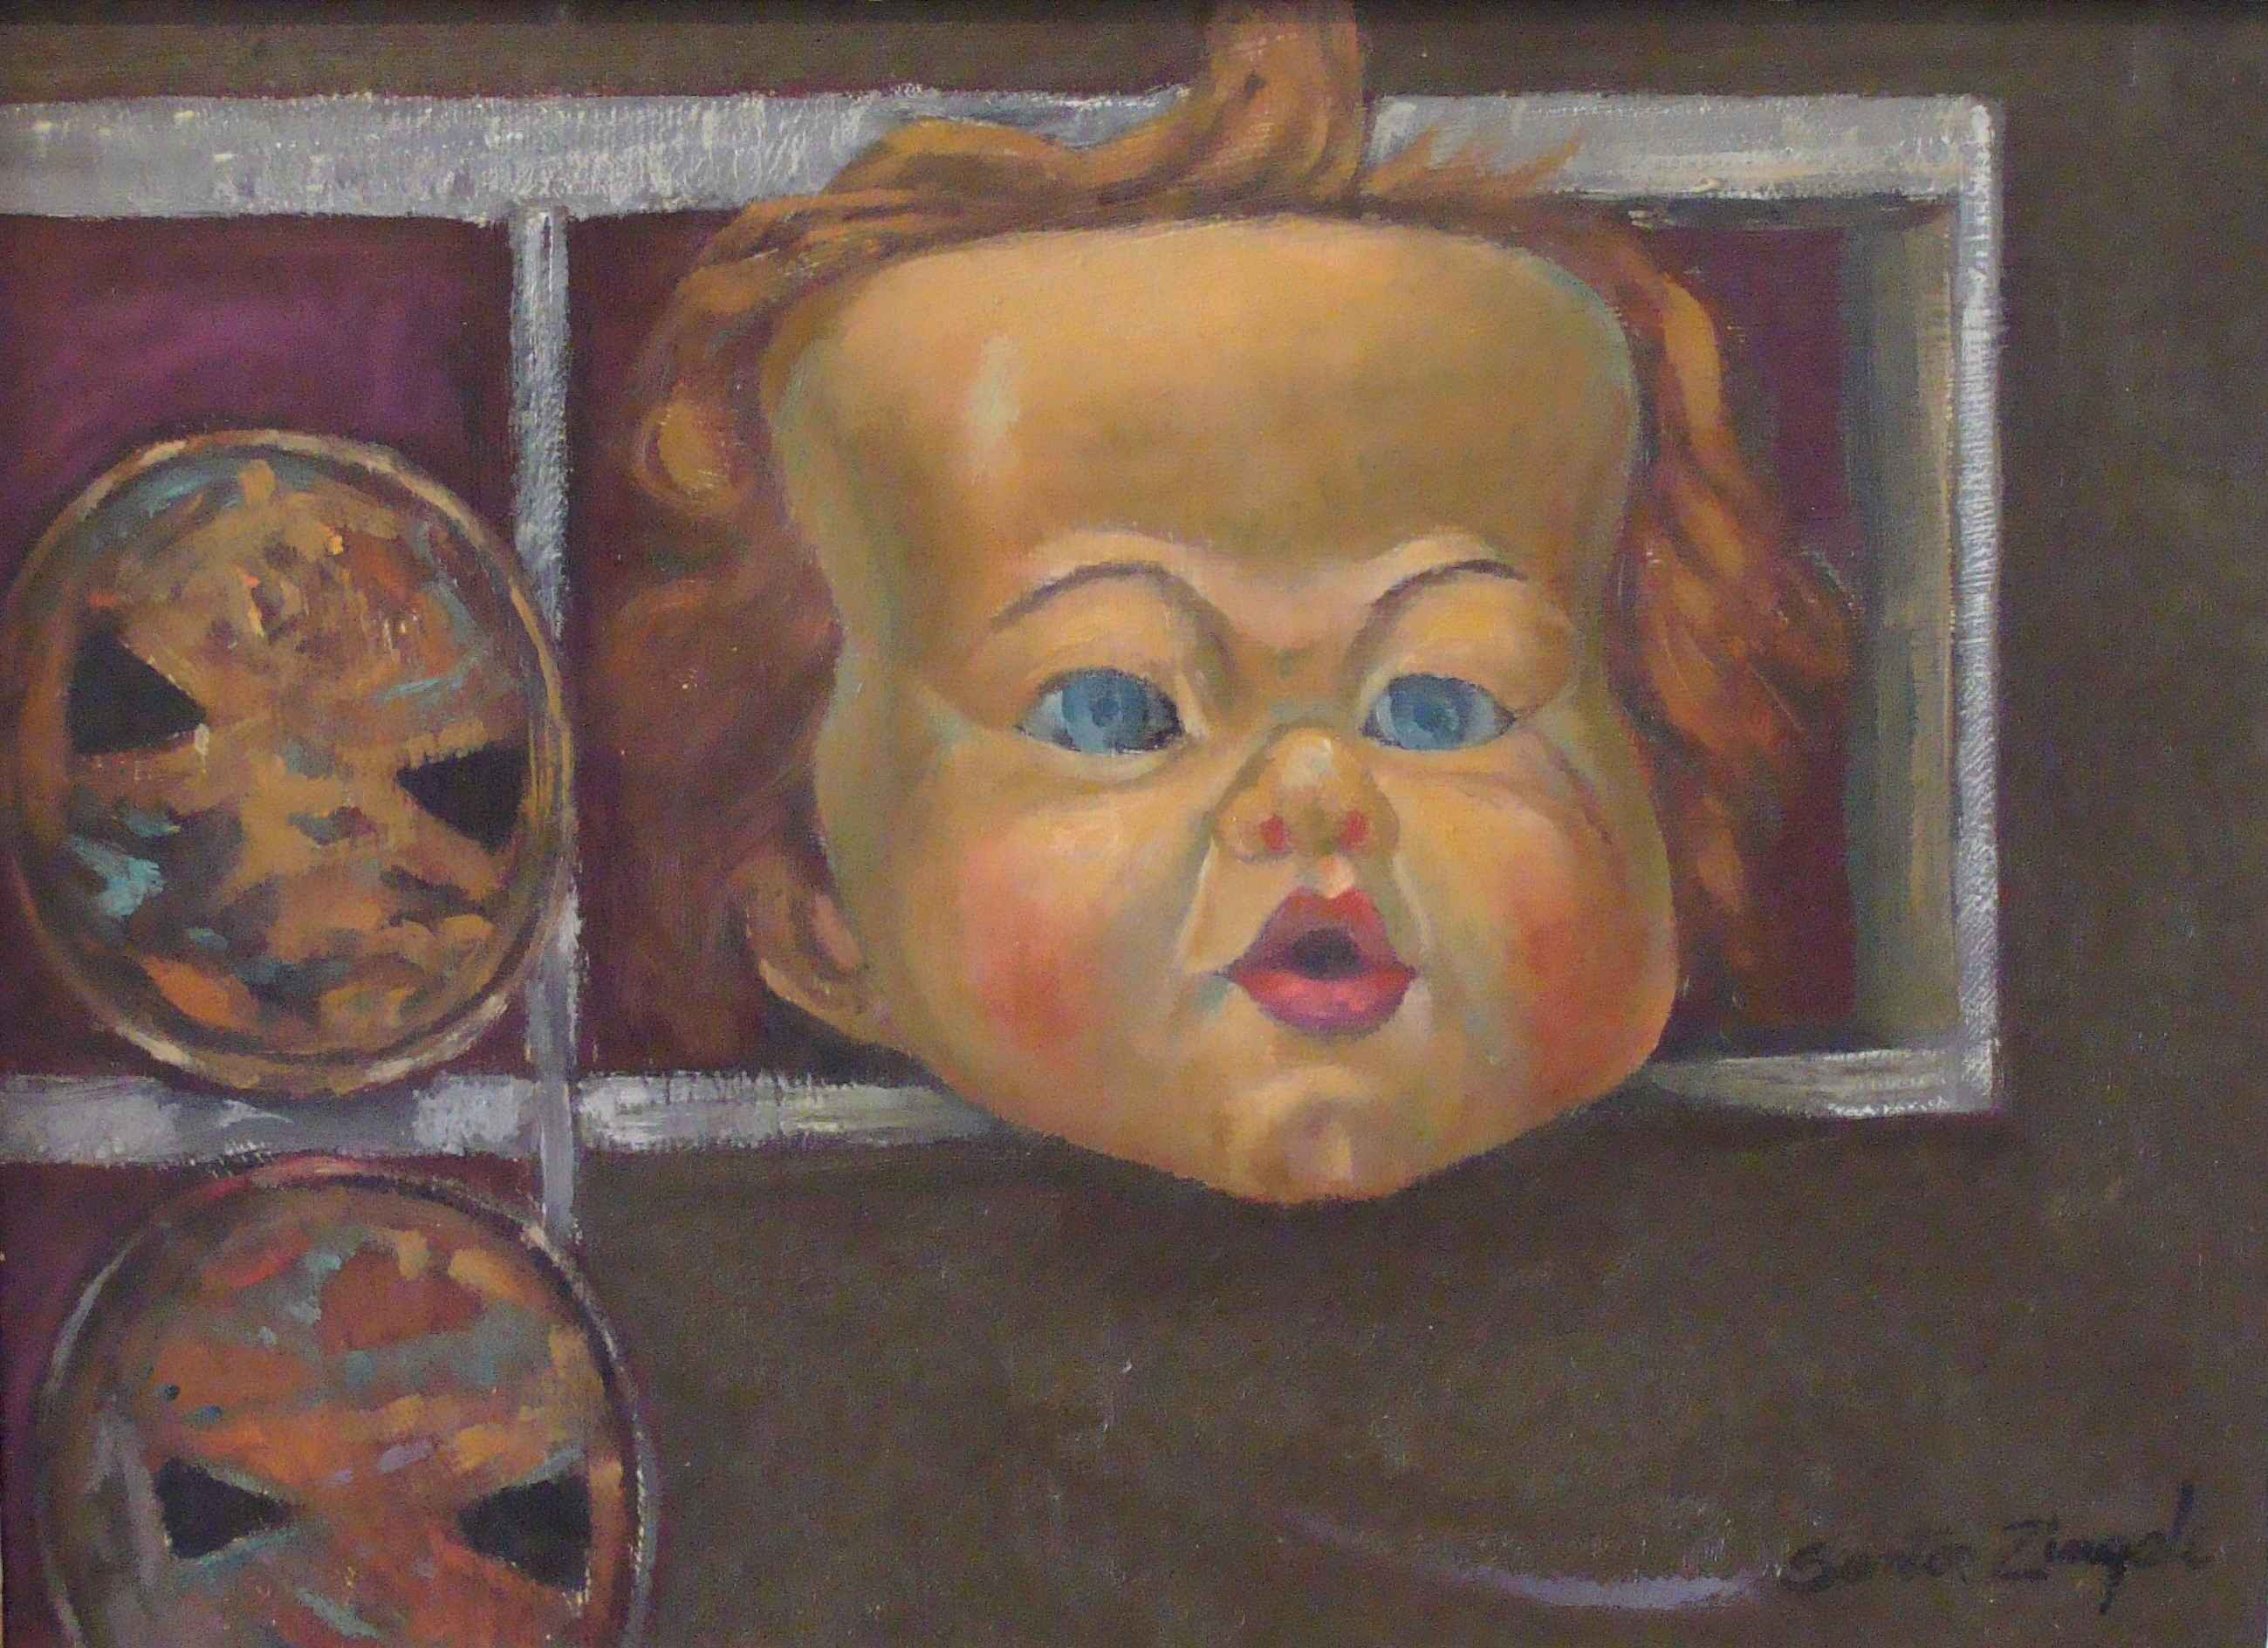 Doll's Head with Cans by Mr. Santos Zingale - Masterpiece Online